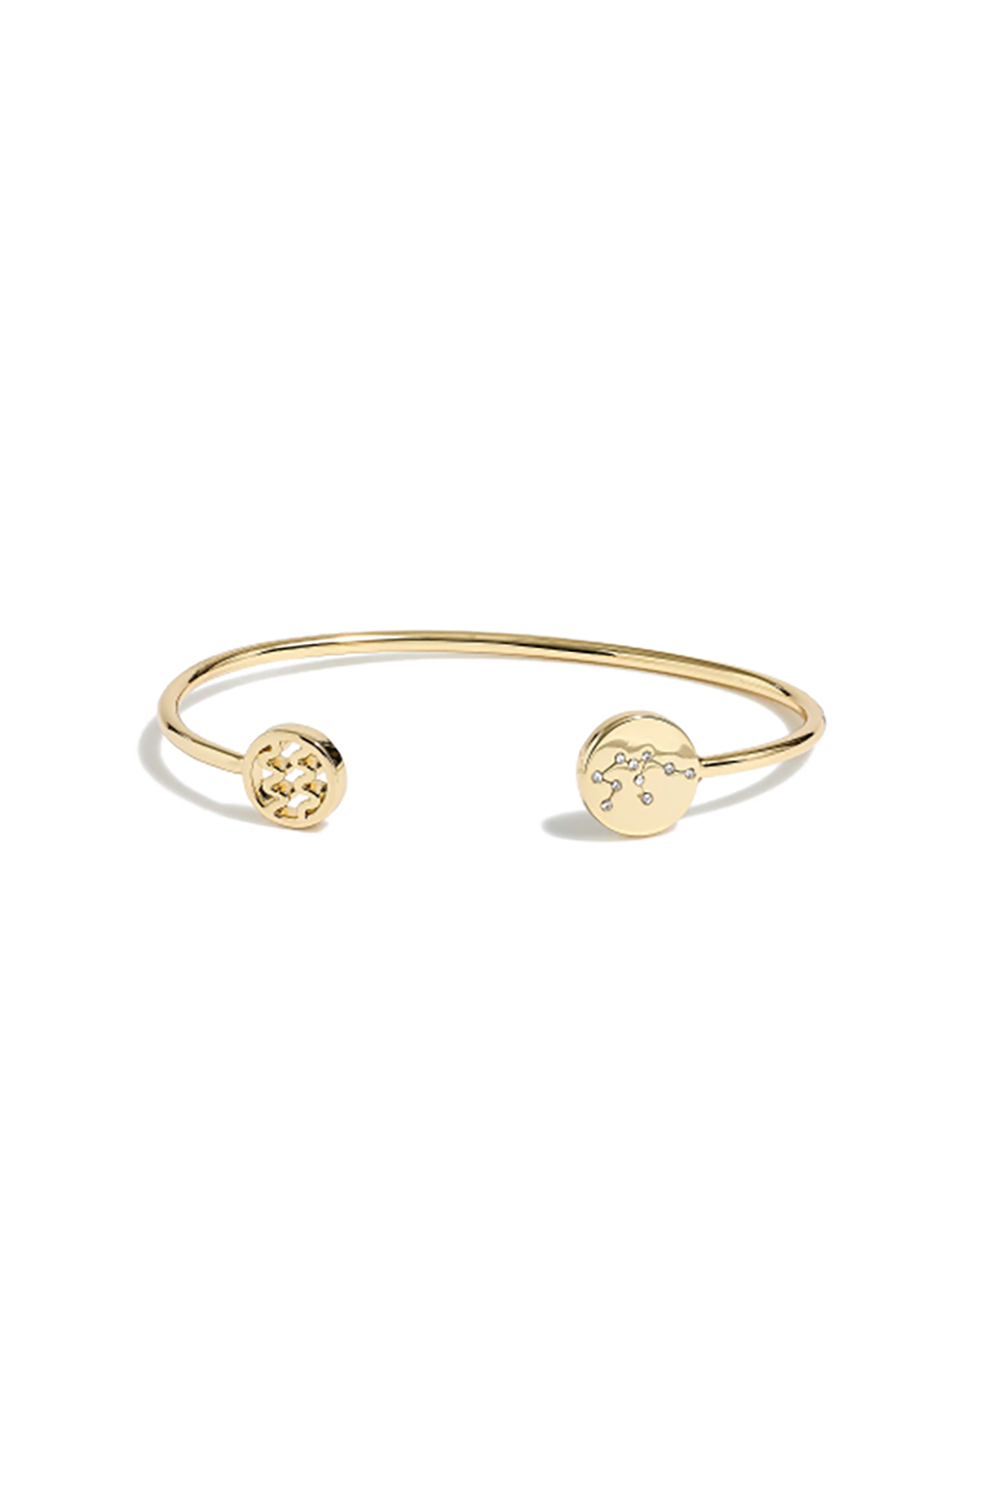 Zodiac Cuff Bracelet J.Crew $9.00 SHOP IT How could you not buy you and your best friend matching $9 (!) gold-plated brass cuffs?